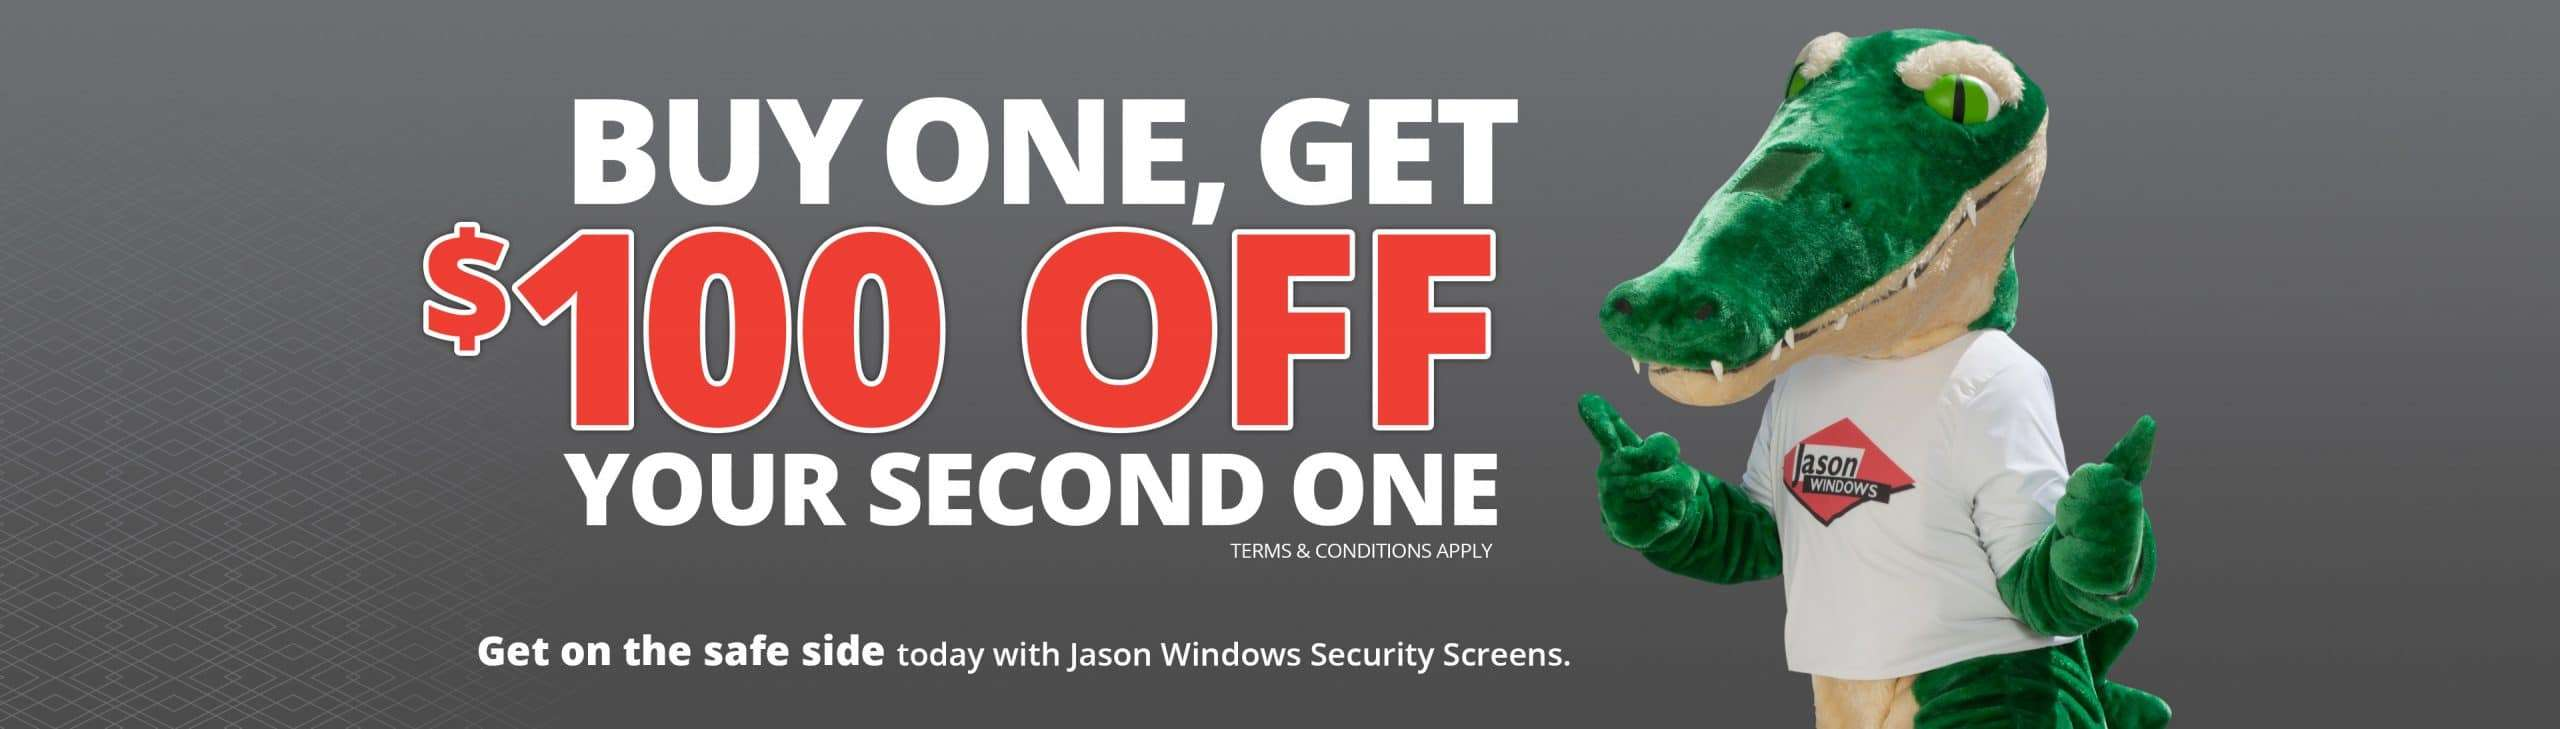 Happy Snaps the crocodile, our mascot for the Jason Security Screen range, standing next to our special offer... buy one security door, get $100 off your second security door when purchased together in the one transaction.